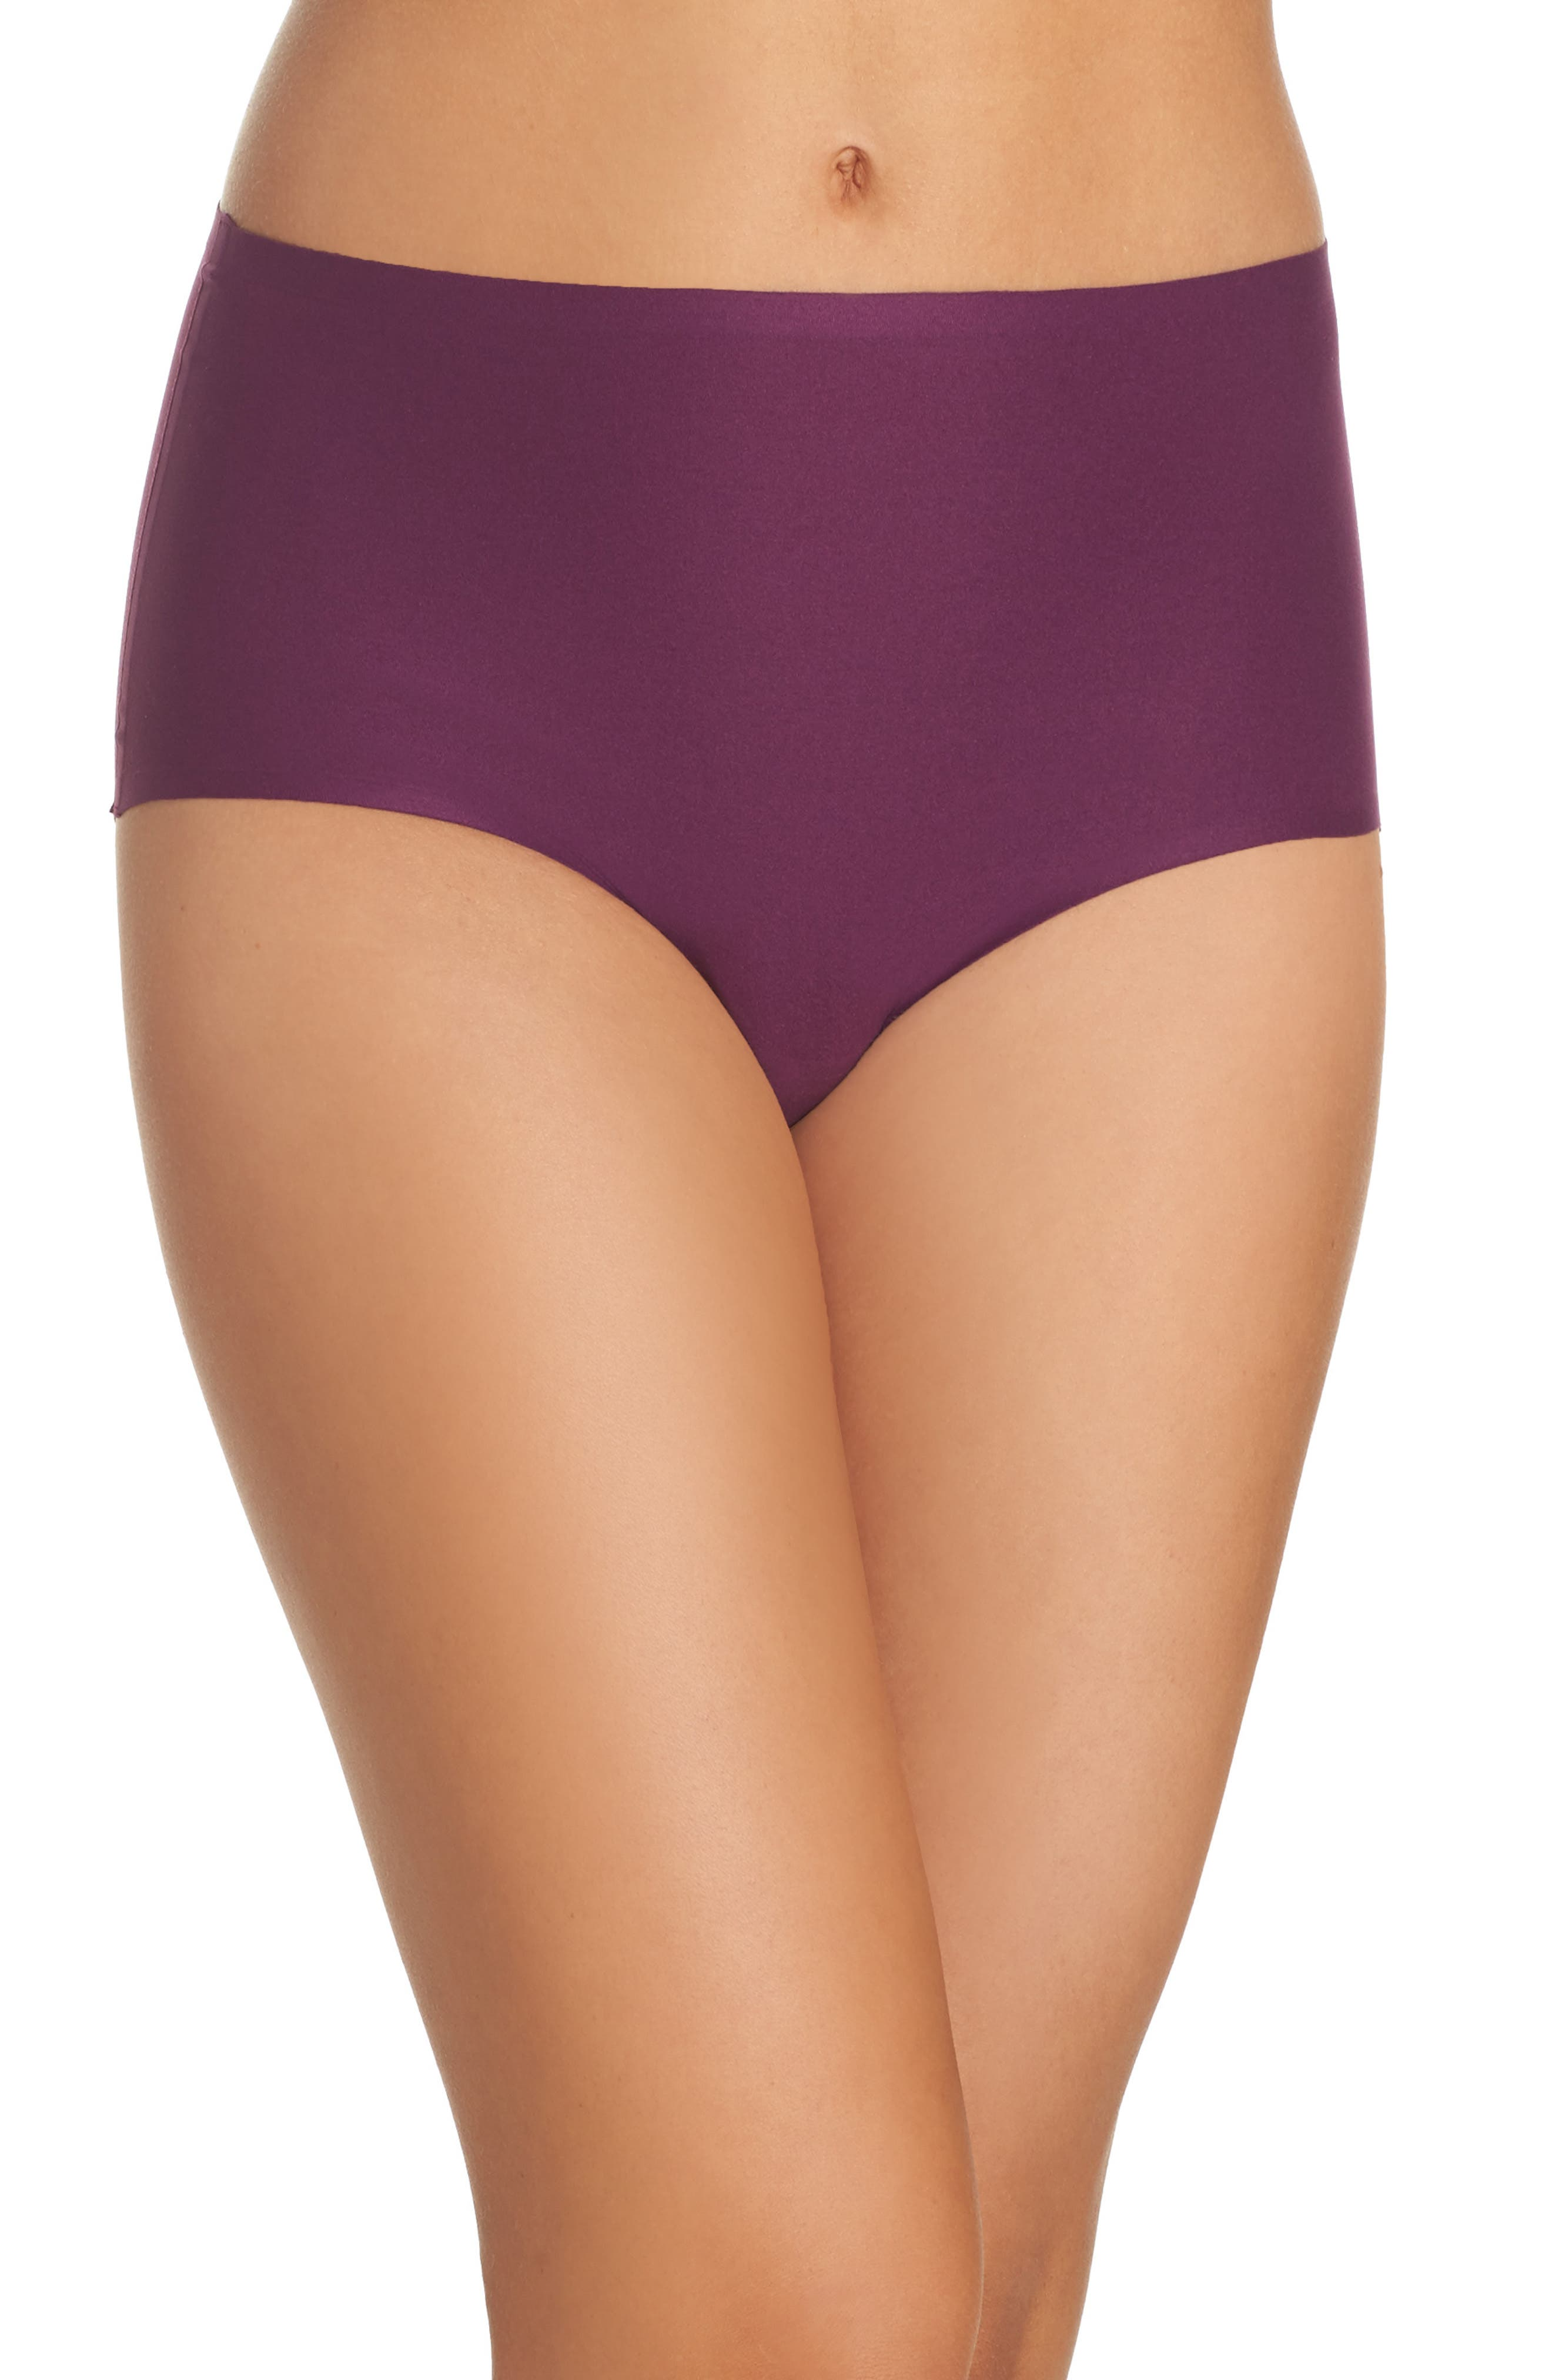 Alternate Image 1 Selected - Chantelle Intimates Soft Stretch High Waist Seamless Briefs